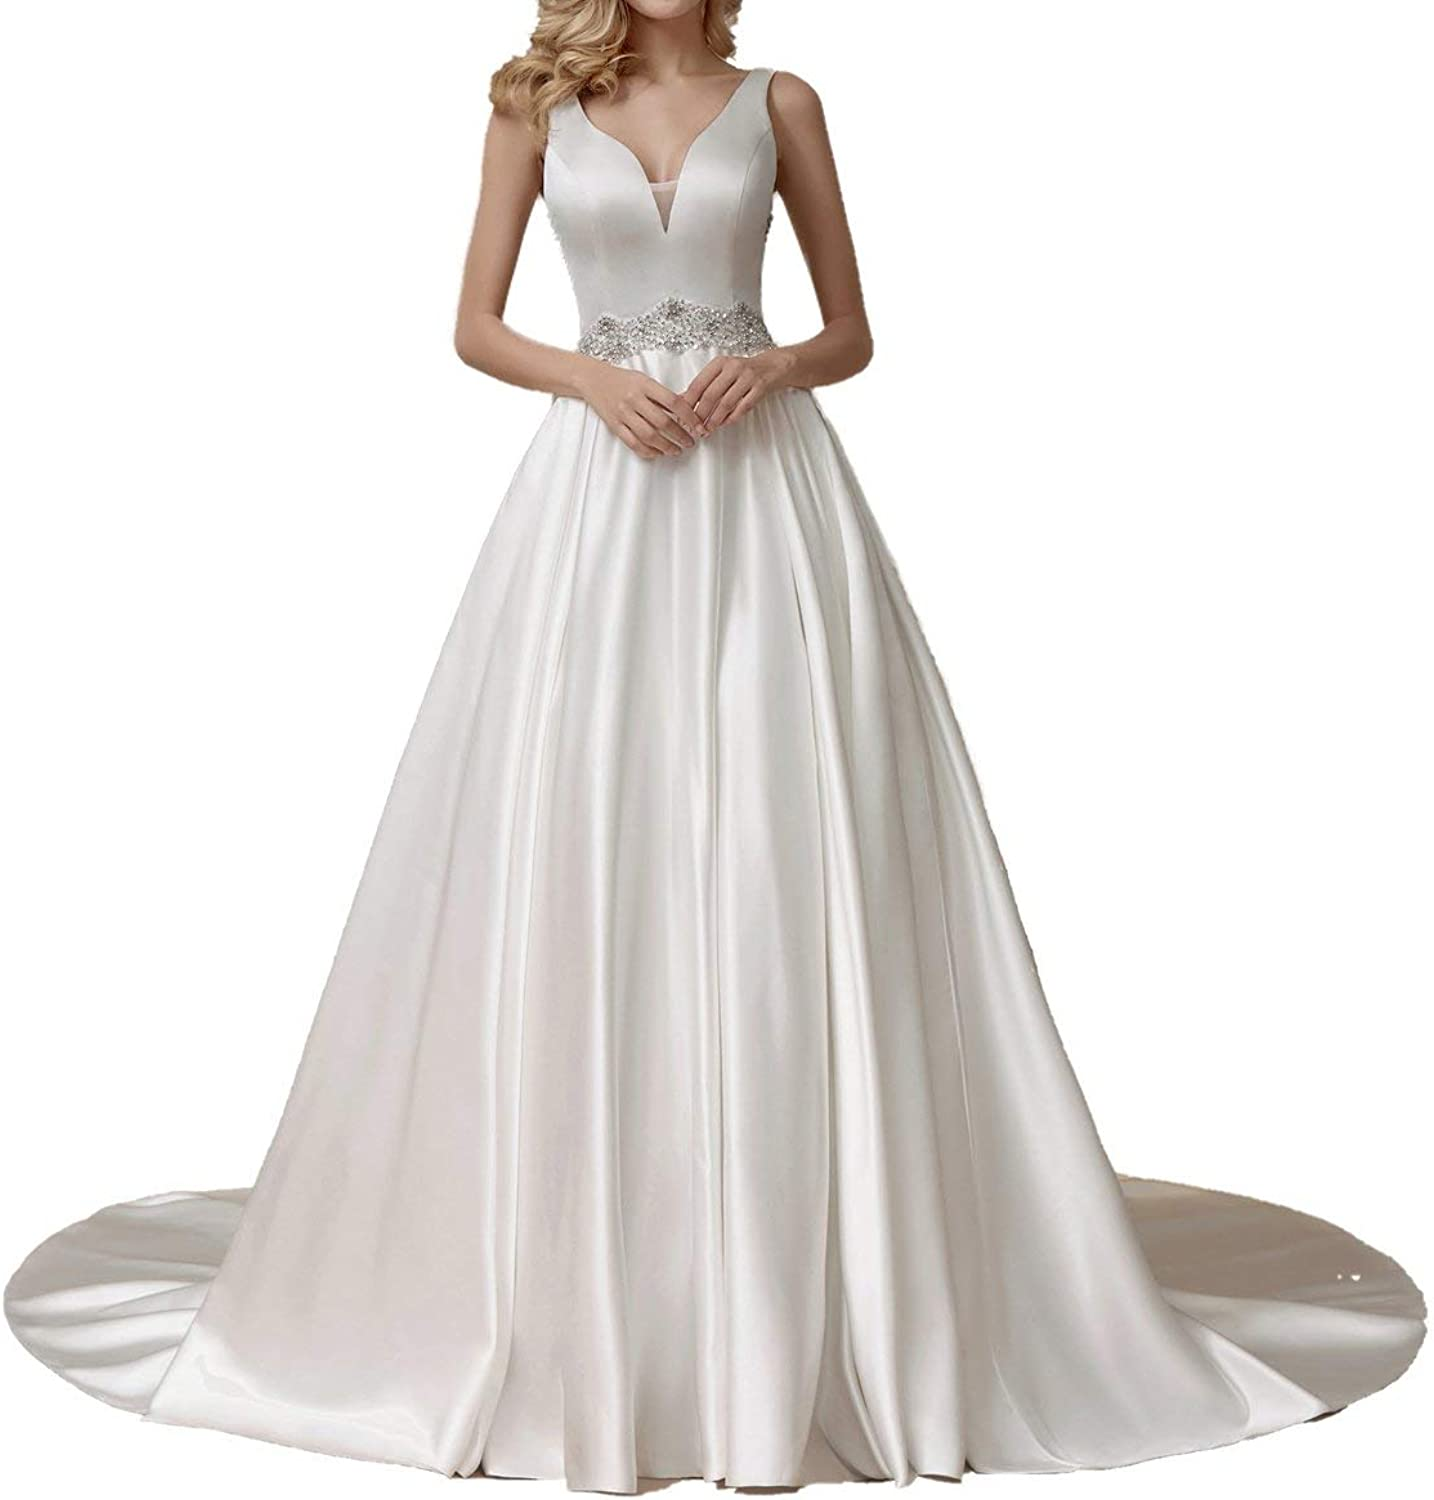 ICCELY Women's Ball Gown VNeck Rhinestone Sweep Brush Train Wedding Dresses for Bride